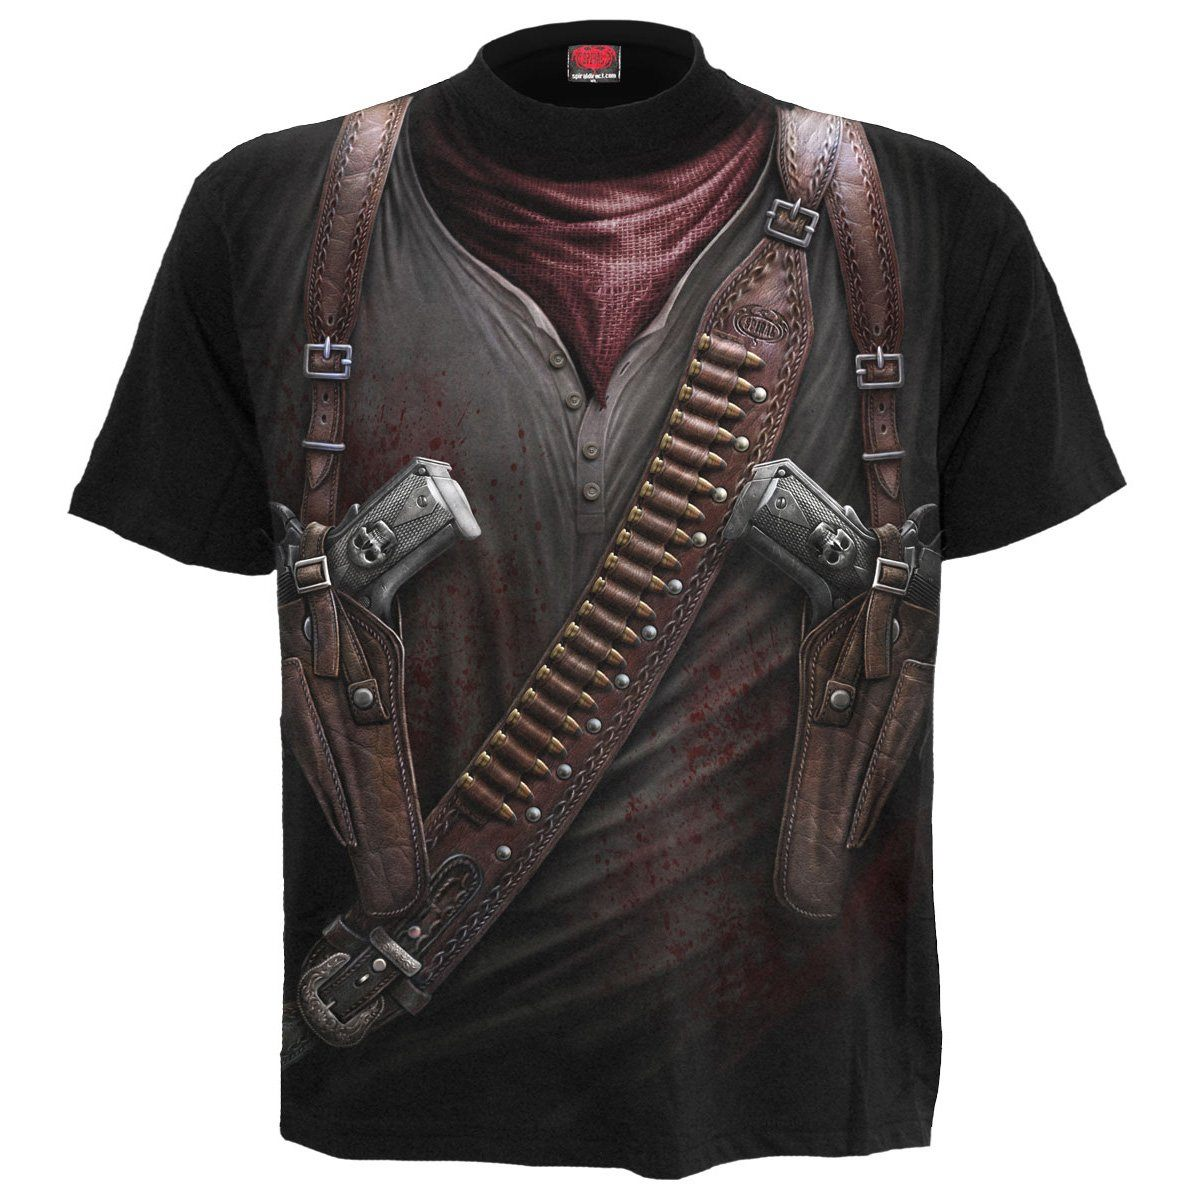 Apocalyptic Holster Wrap All Over Men's T-Shirt - Rebels Depot